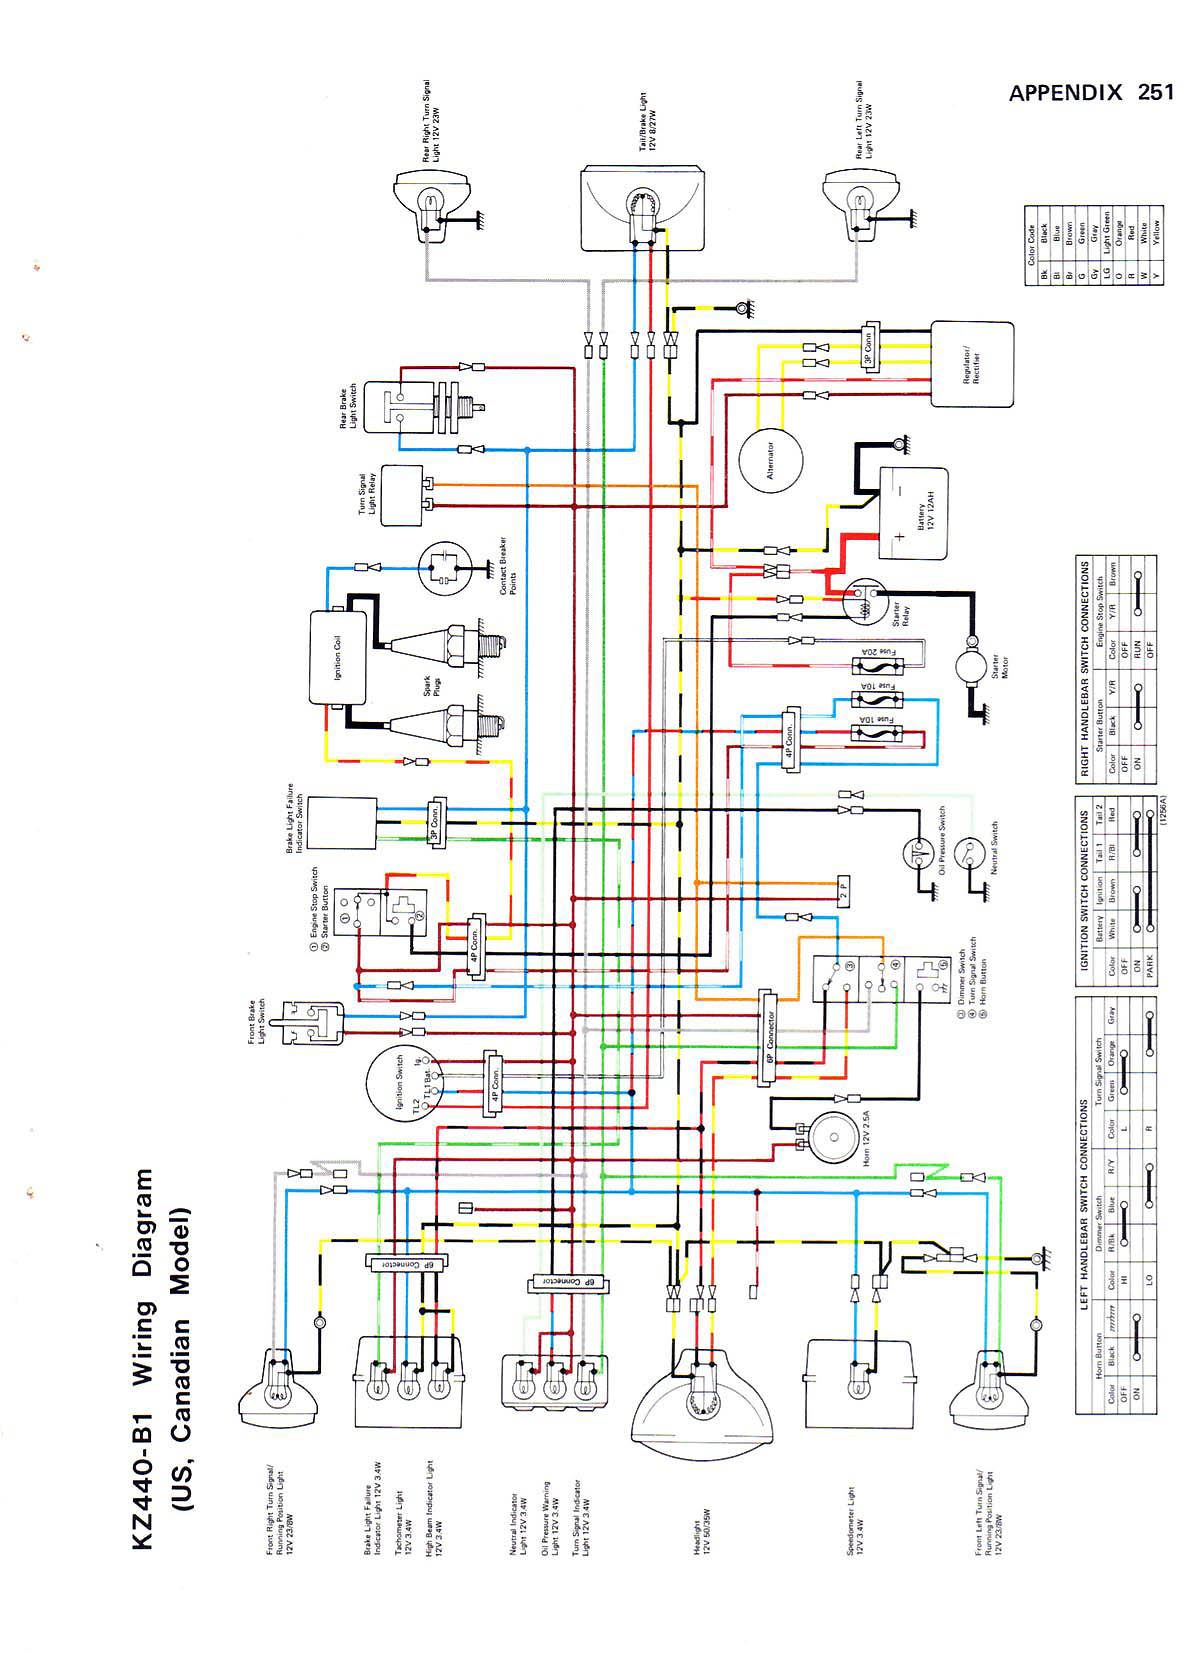 Kawasaki KZ 440 %2780 a %2782 Service Manual_Page_249 kz400 wiring diagram 1983 kawasaki motorcycle wiring diagrams  at bakdesigns.co